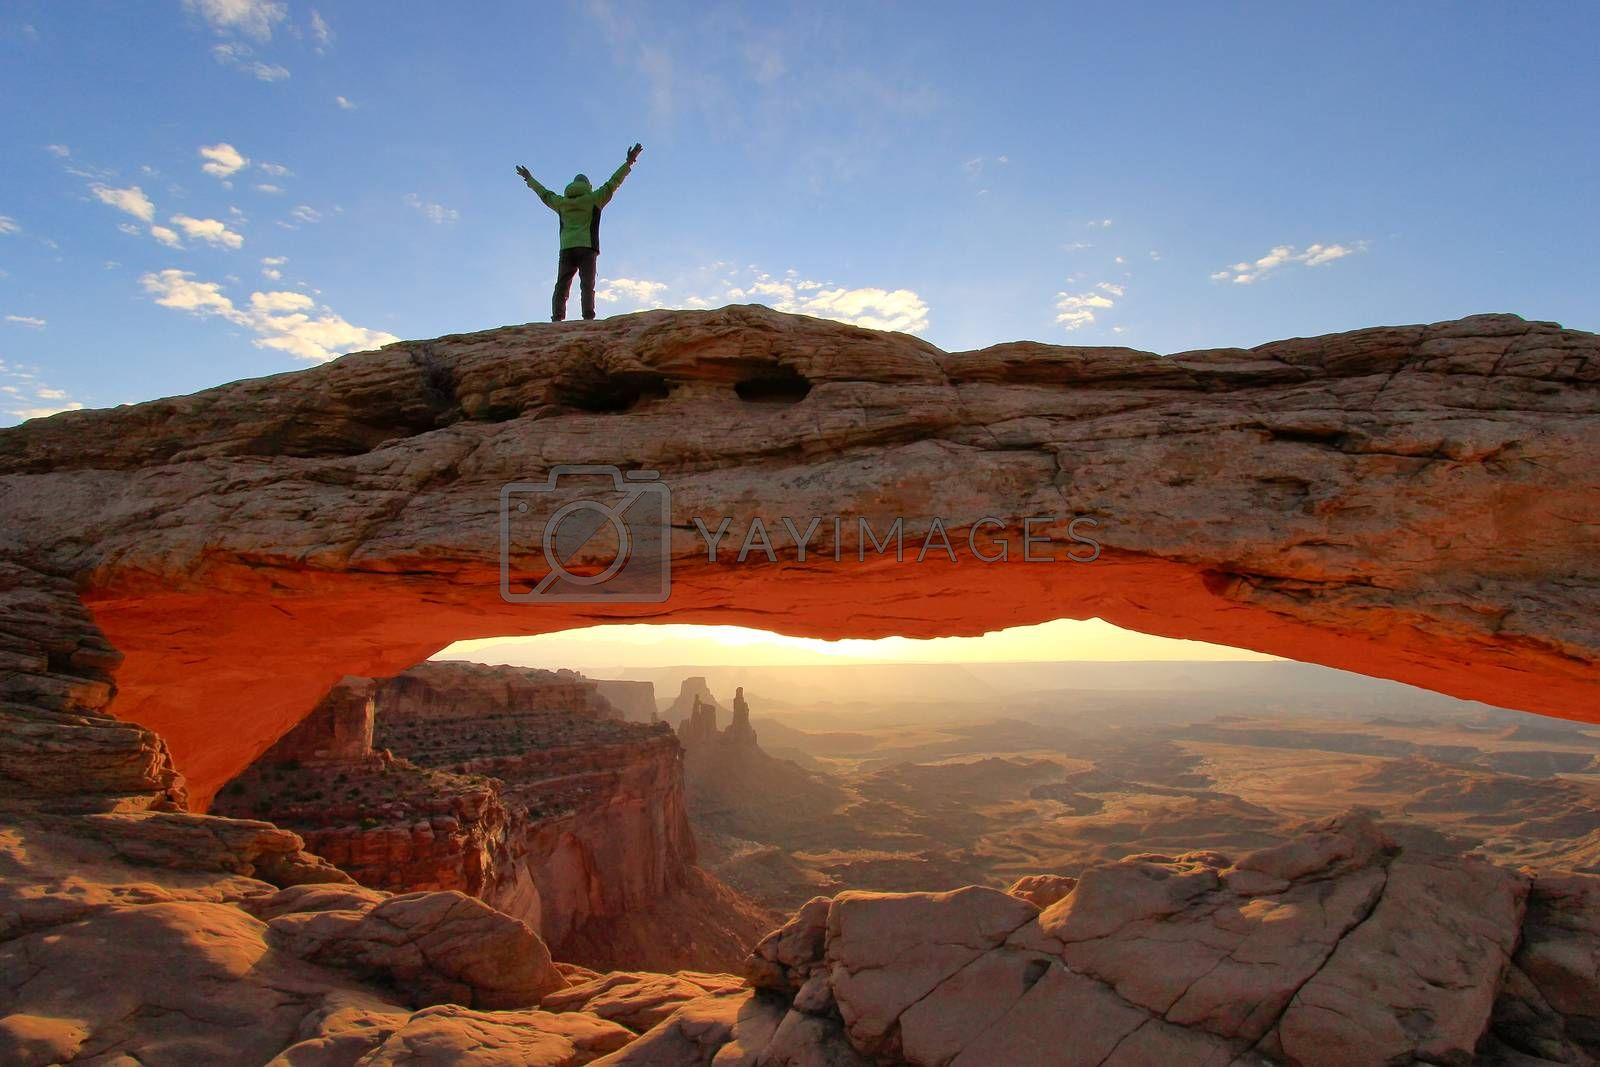 Royalty free image of Silhouetted person standing on top of Mesa Arch, Canyonlands Nat by donya_nedomam